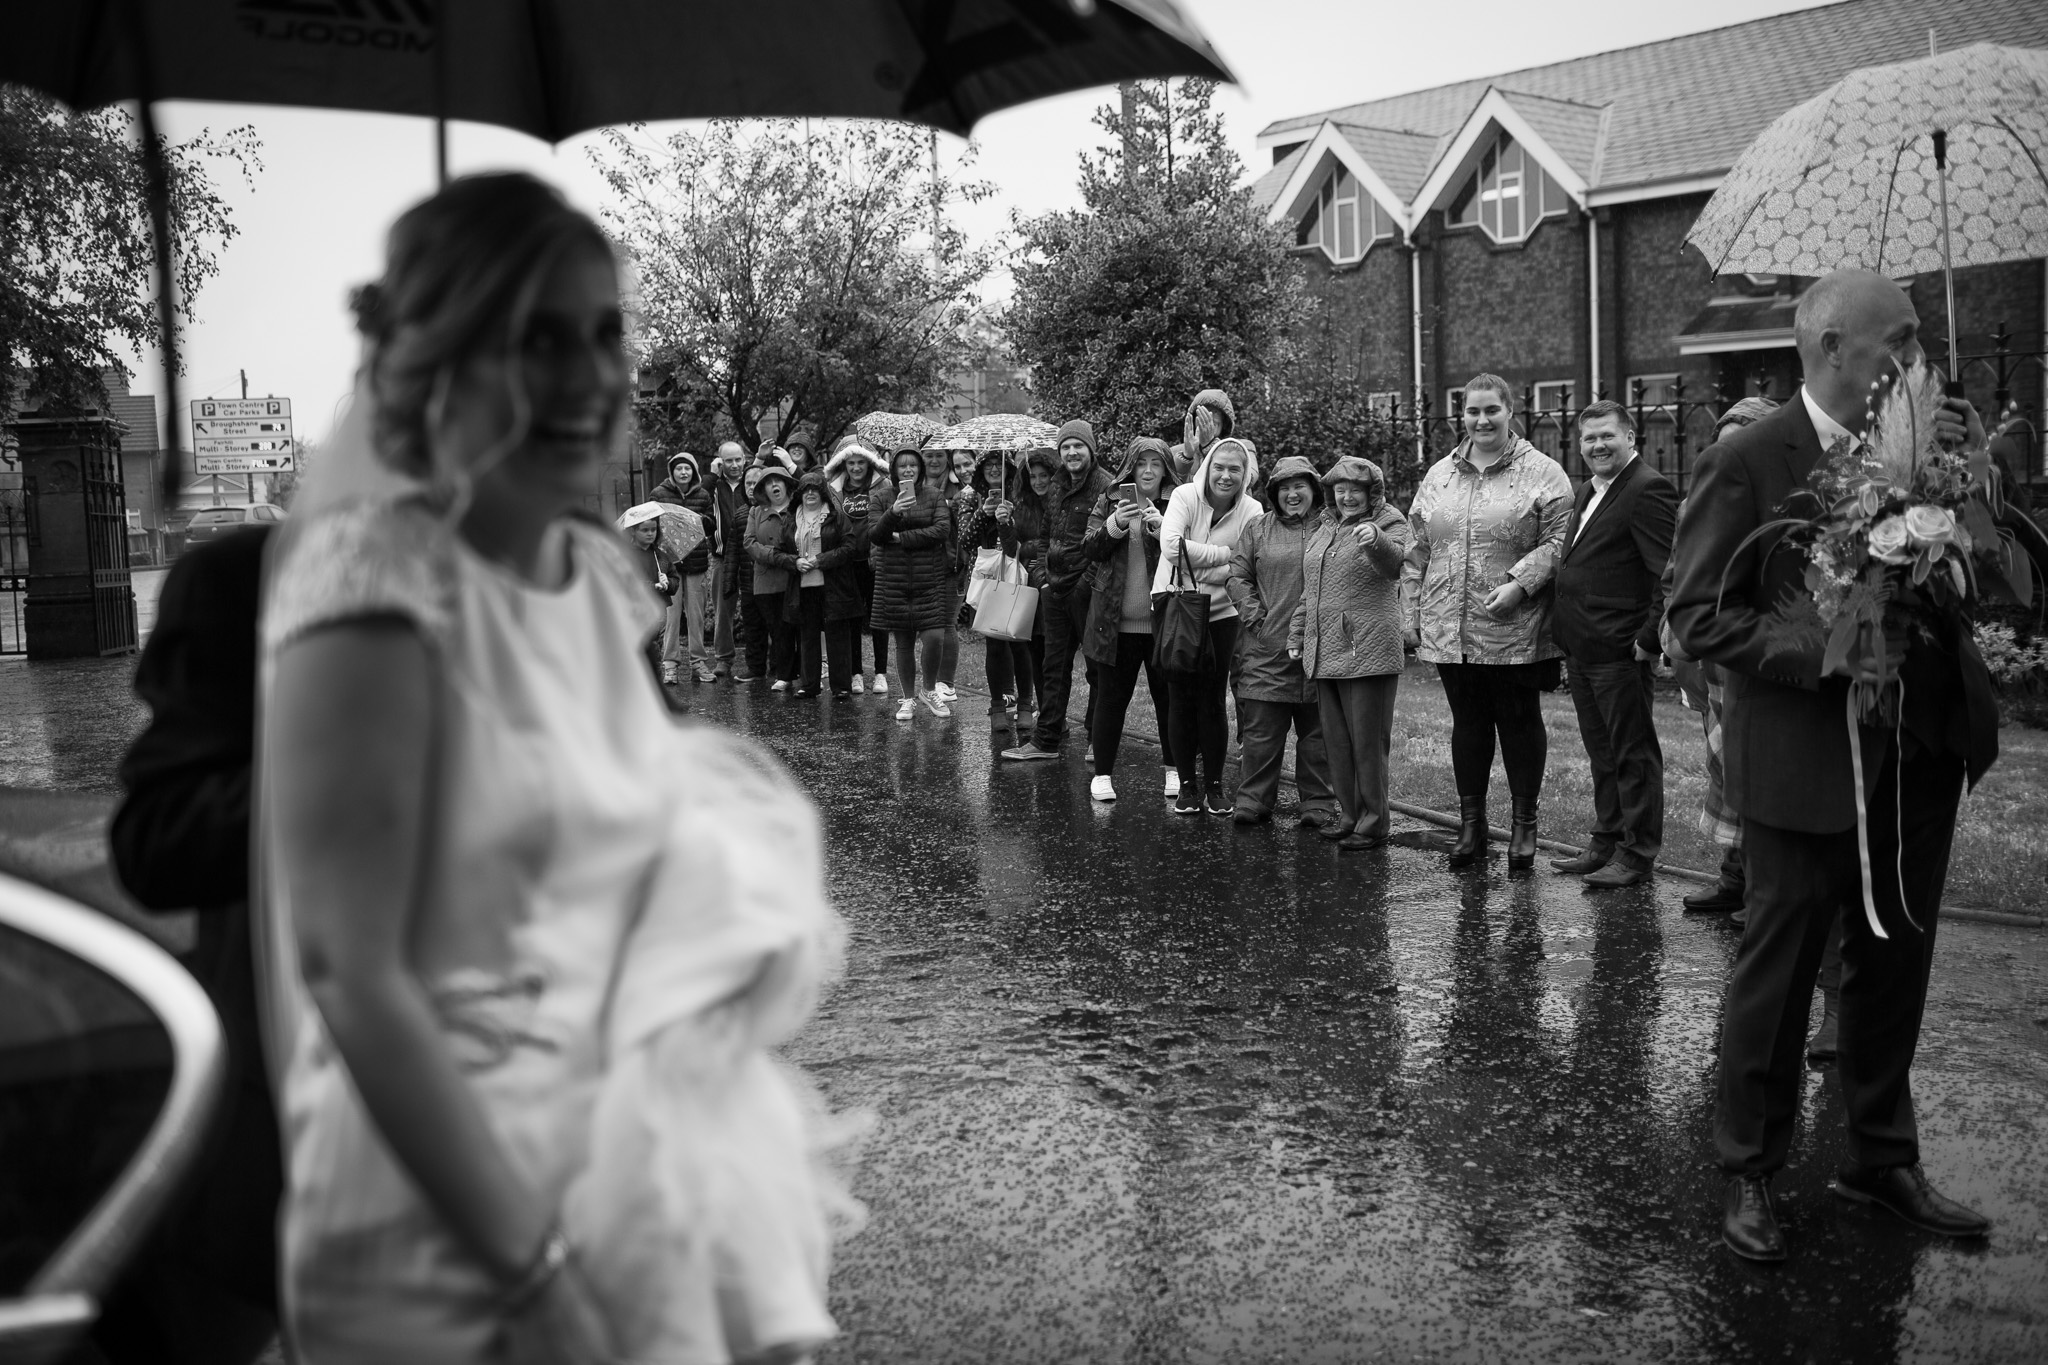 Mark_Barnes_Northern_Ireland_Wedding_Photography_Ballyscullion_Park_Wedding_Photography_Stef&Bobby-16.jpg